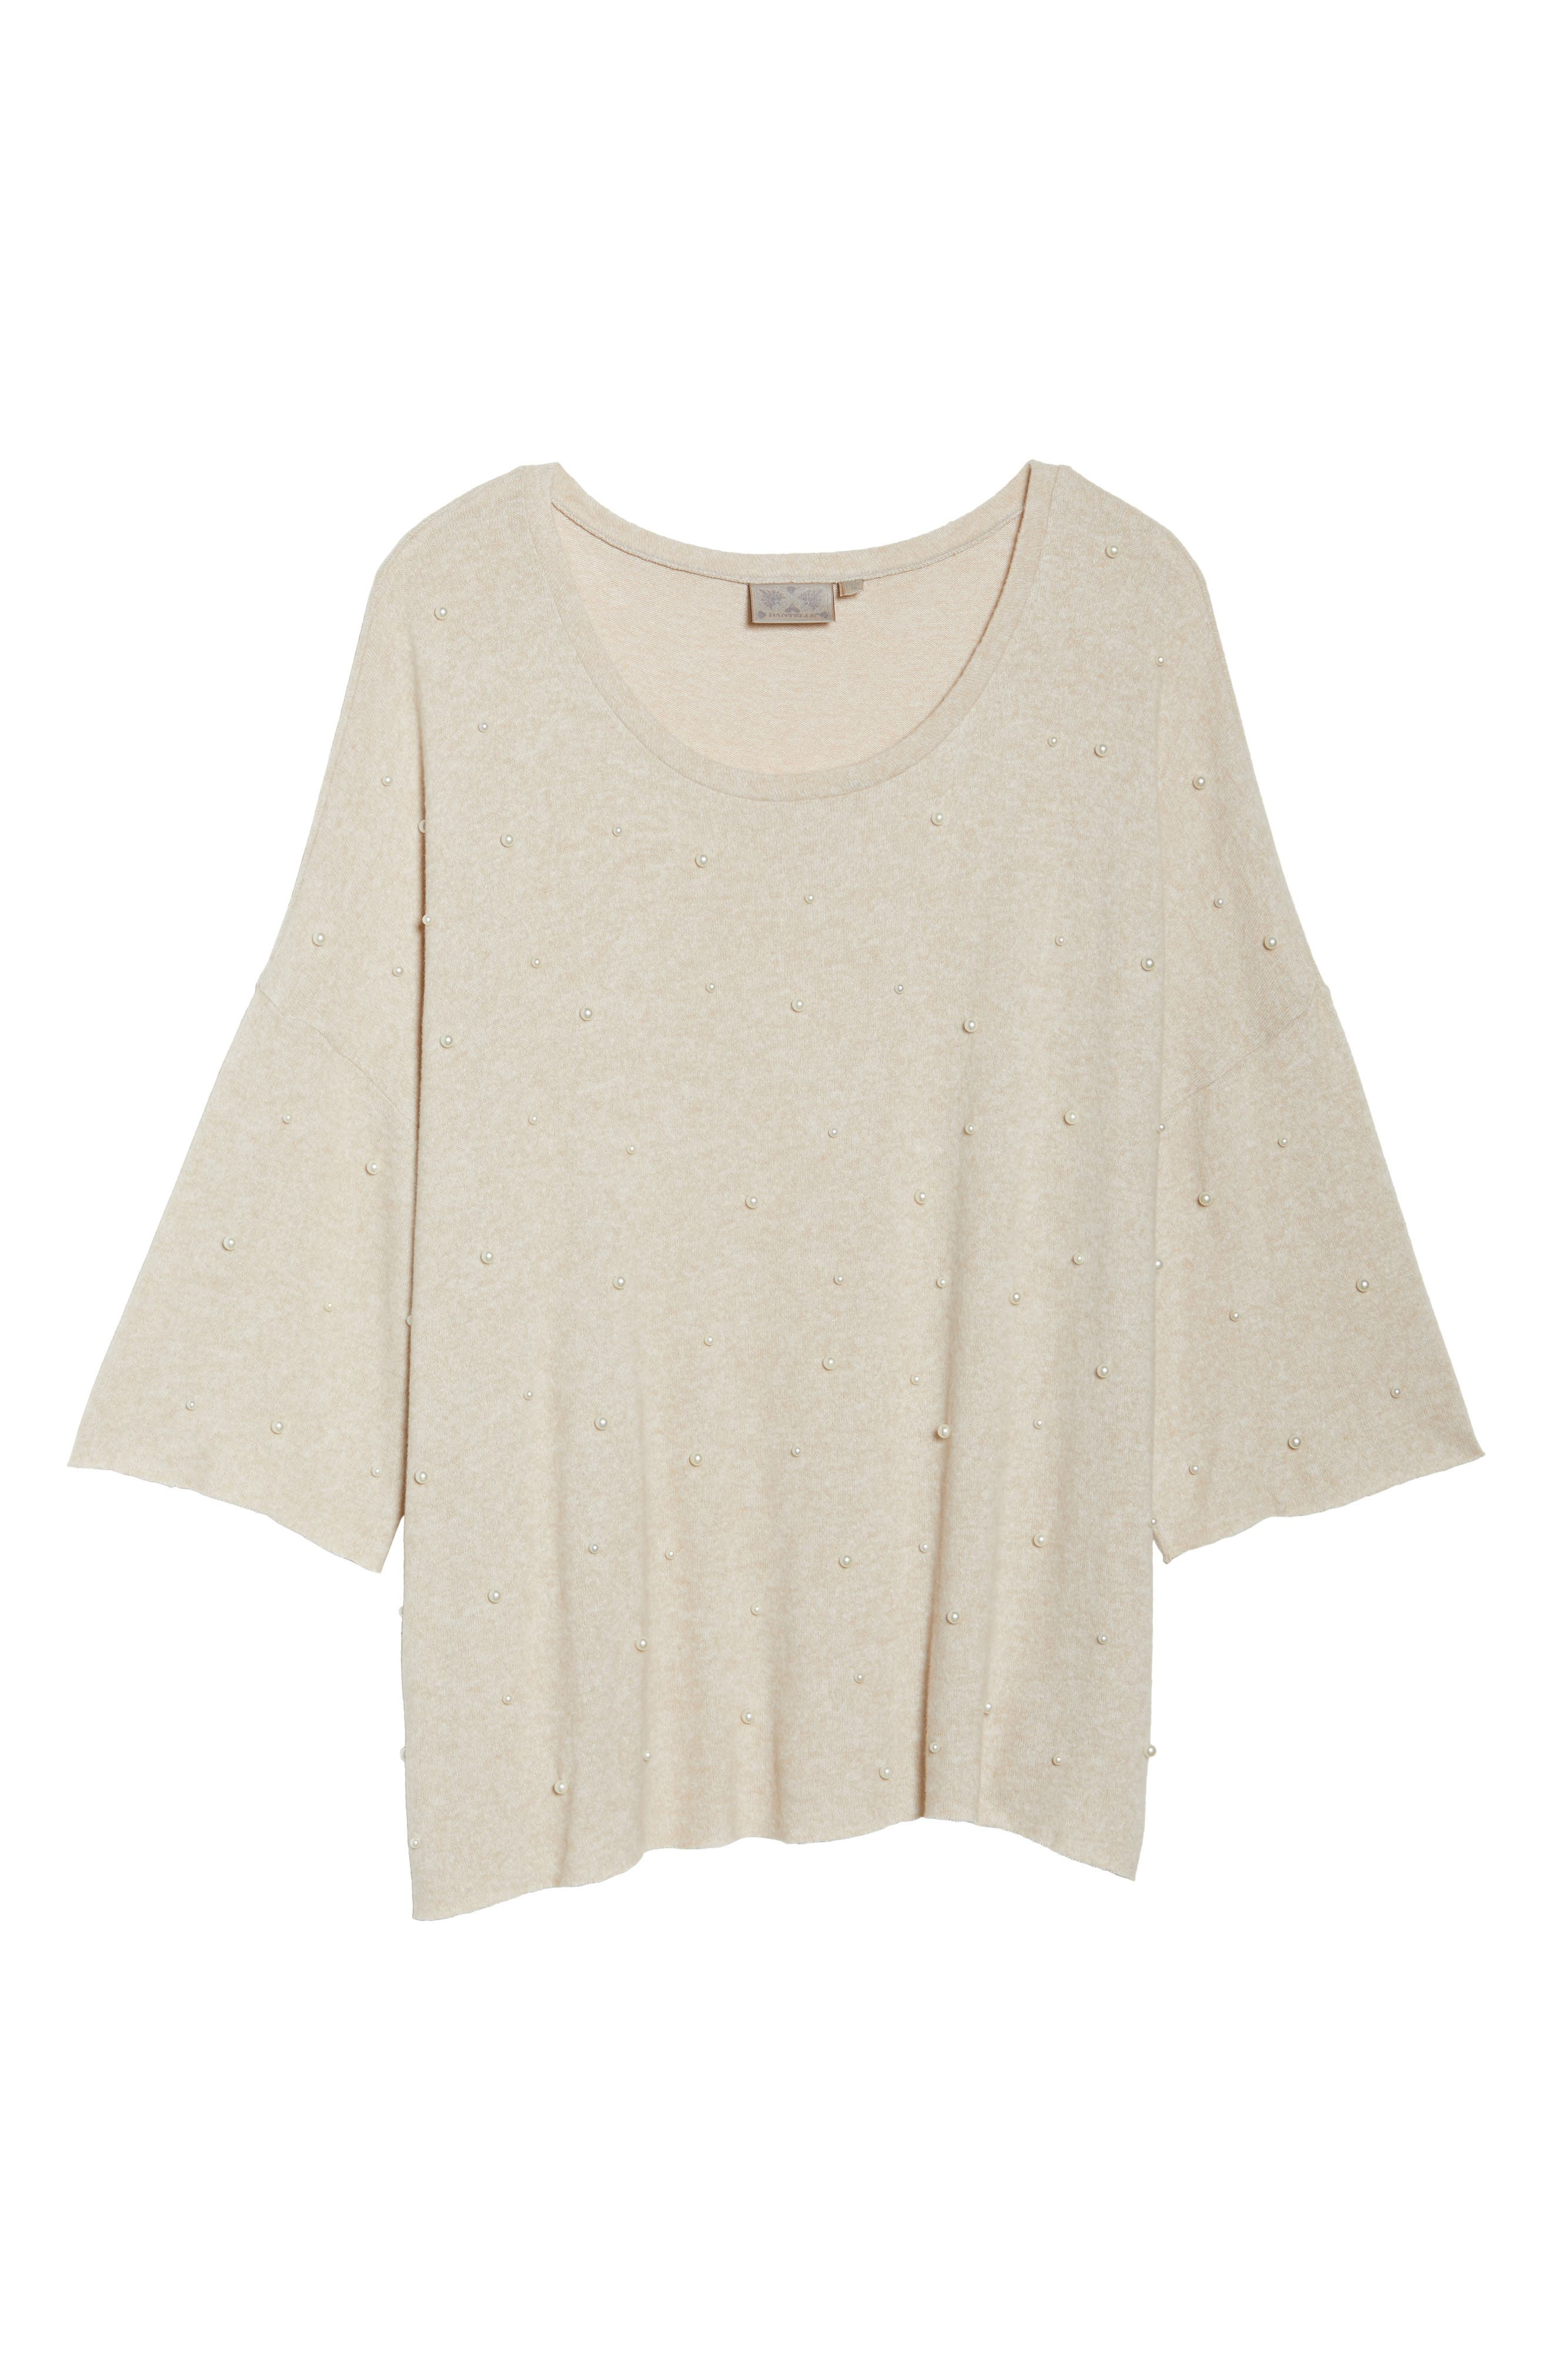 Pearl Embellished Sweater,                             Alternate thumbnail 6, color,                             Oatmeal